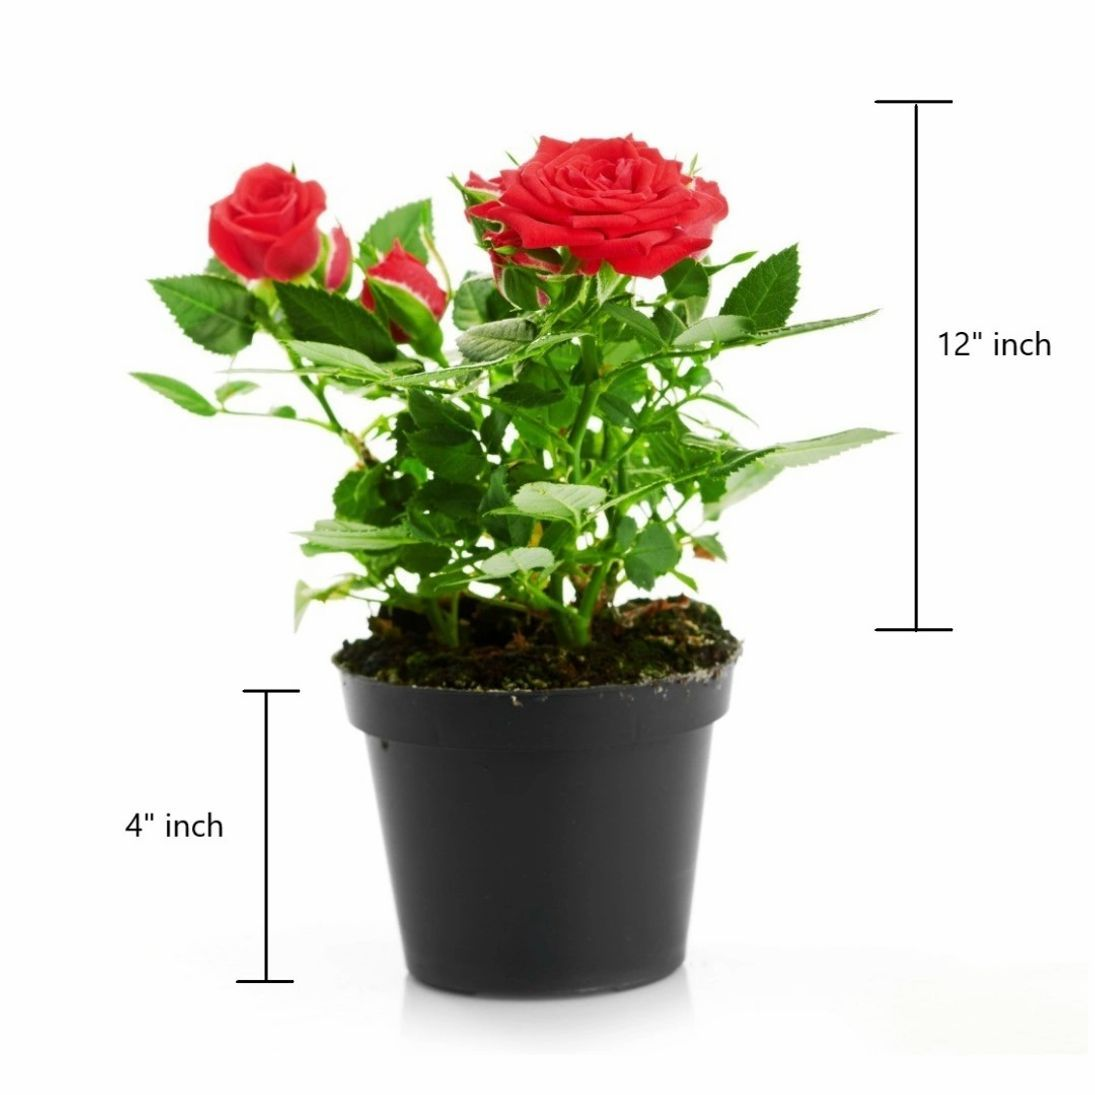 Flower Plants Online Shopping In India Expomx In Expomx In In 2020 Planting Flowers Plants Live Plants